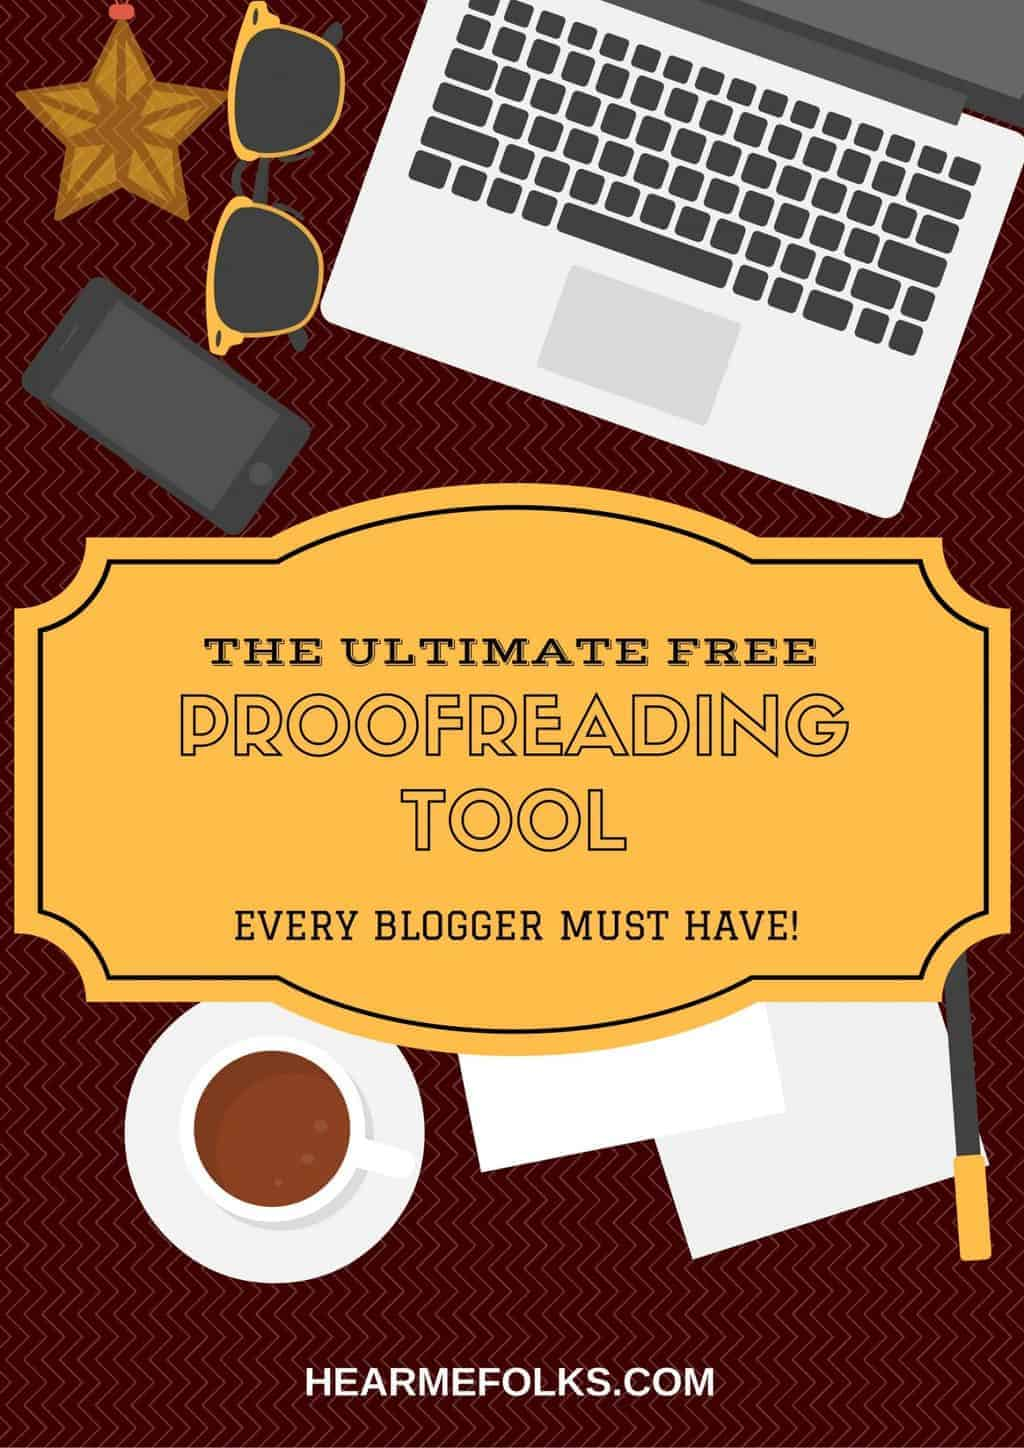 The Ultimate Free Proofreading Tool for Bloggers